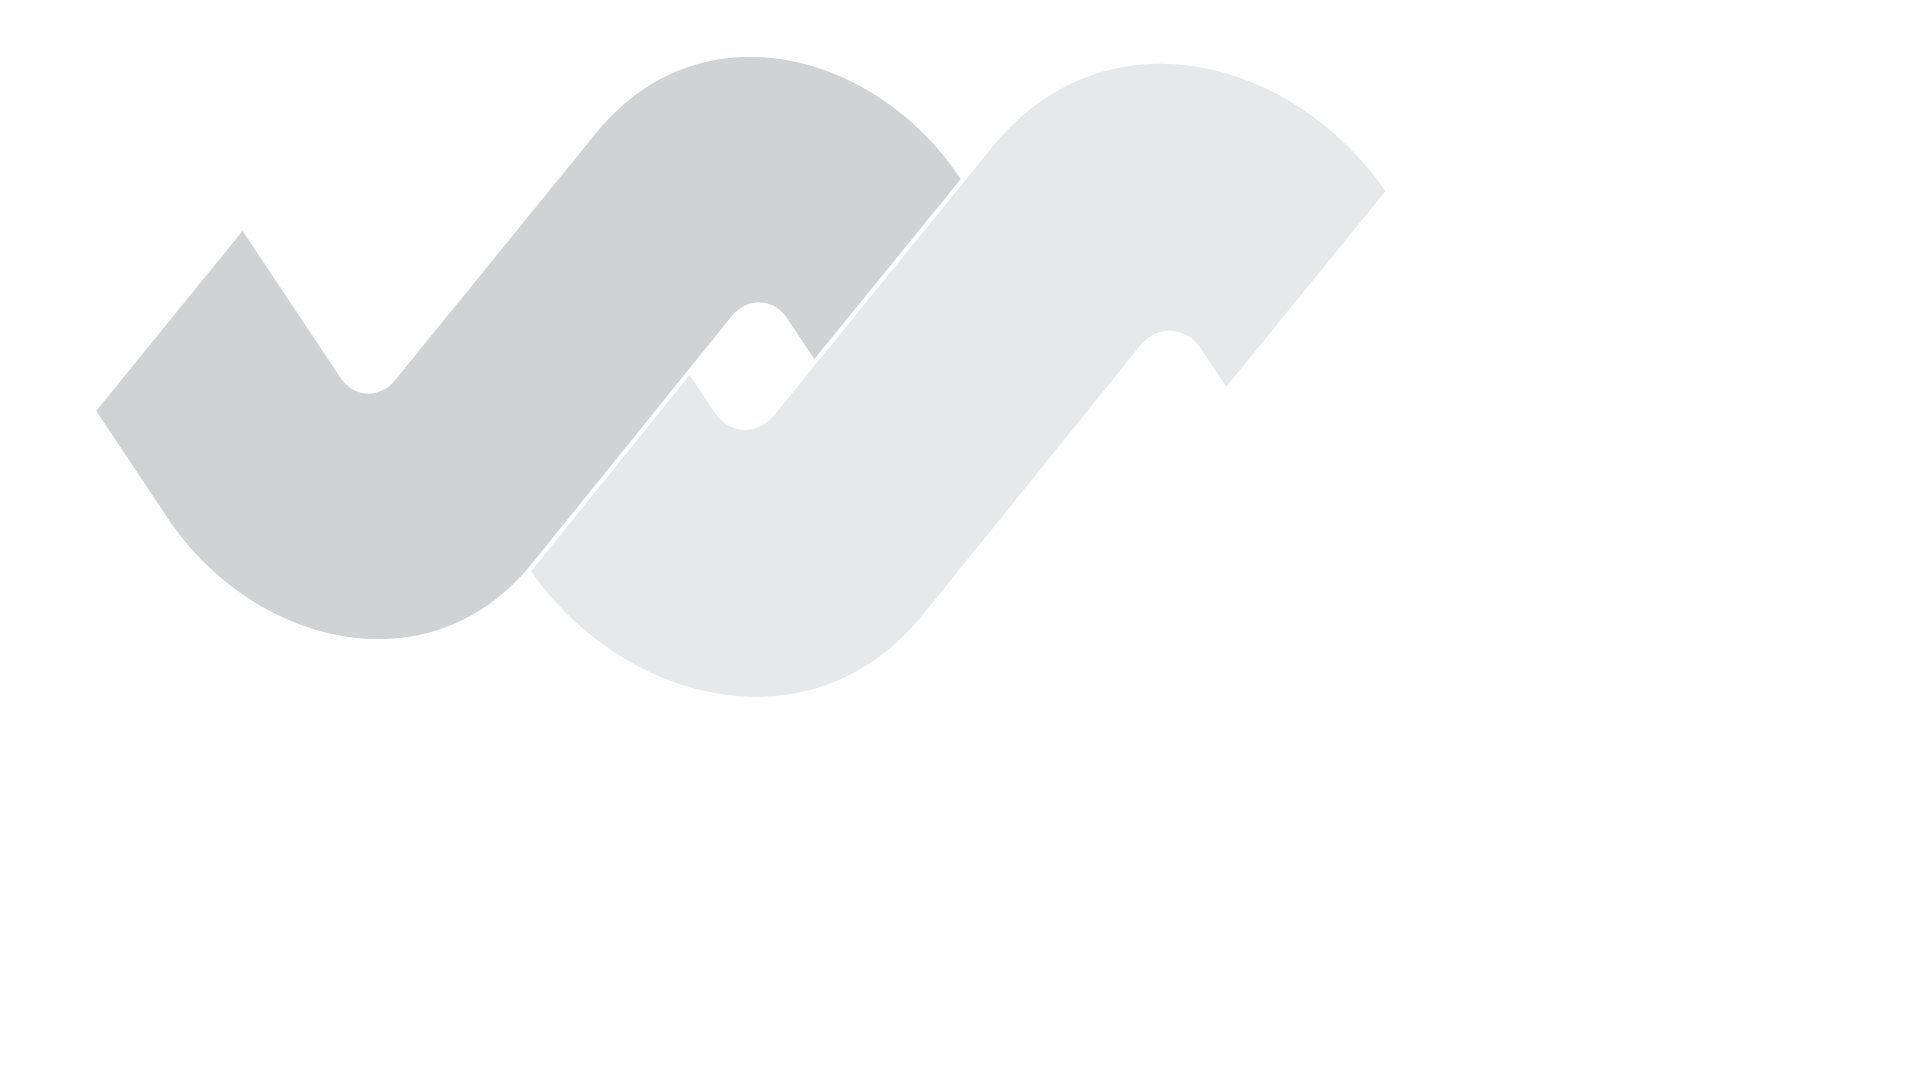 Skin Science Solution Company